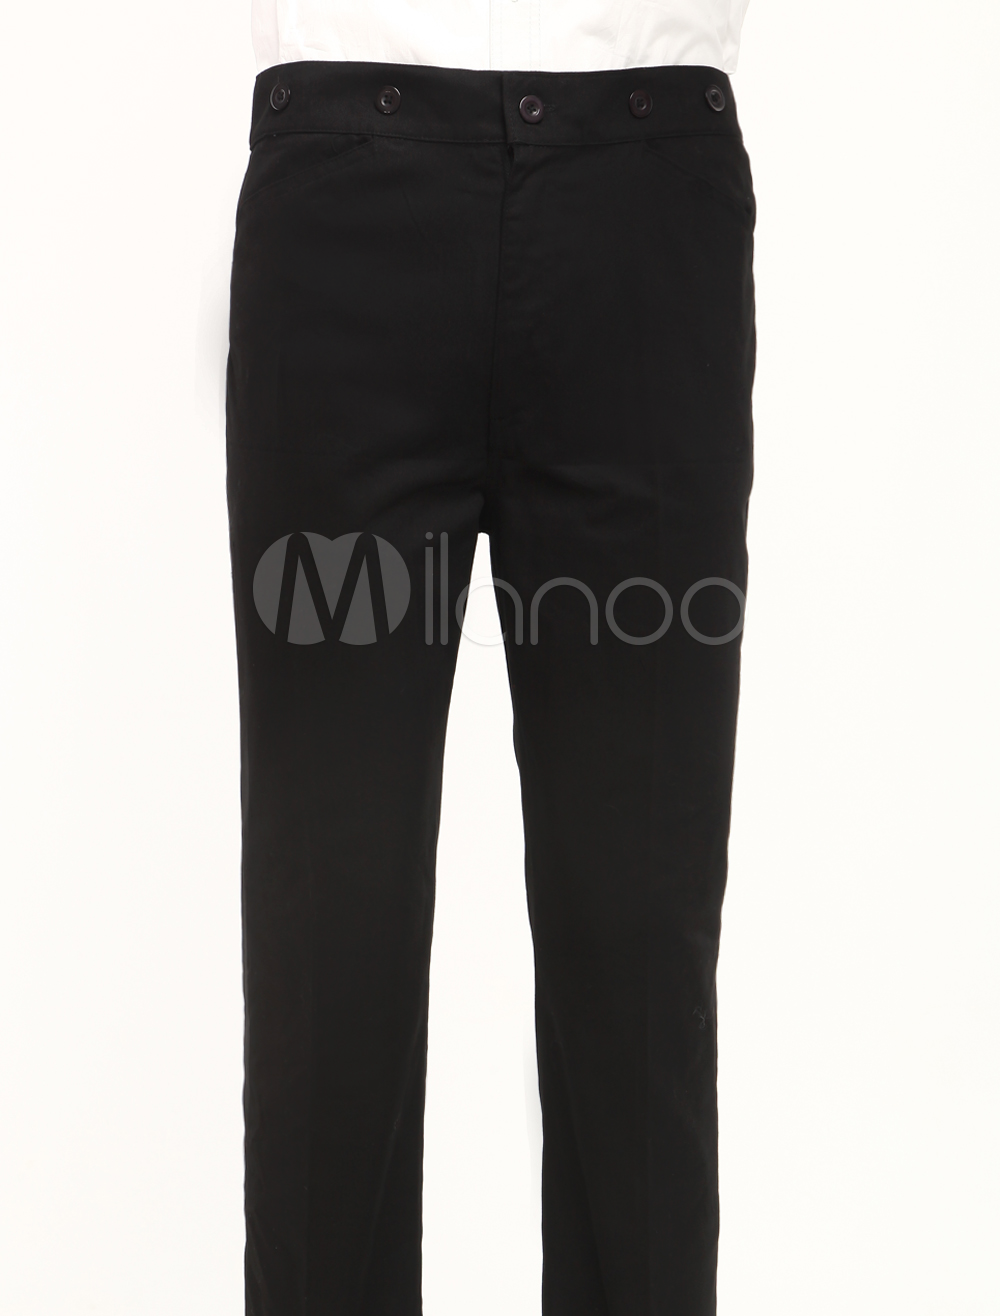 Fabulous Black Cotton Mens Steampunk Trousers $49.99 AT vintagedancer.com